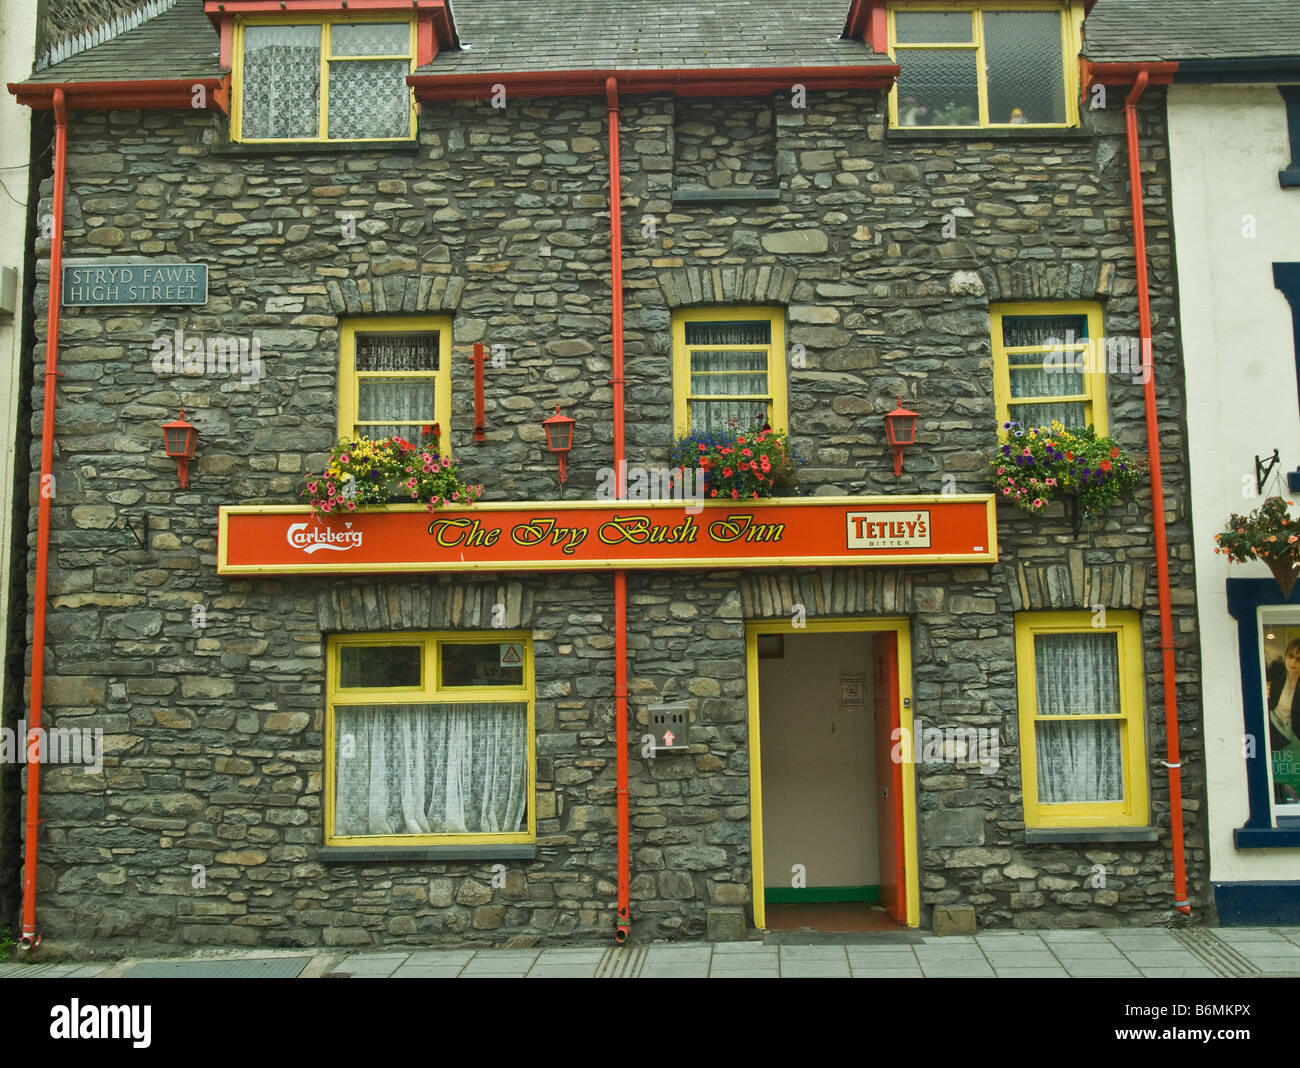 The Ivy Bush Inn Public House in Lampeter Cardiganshire - Stock Image